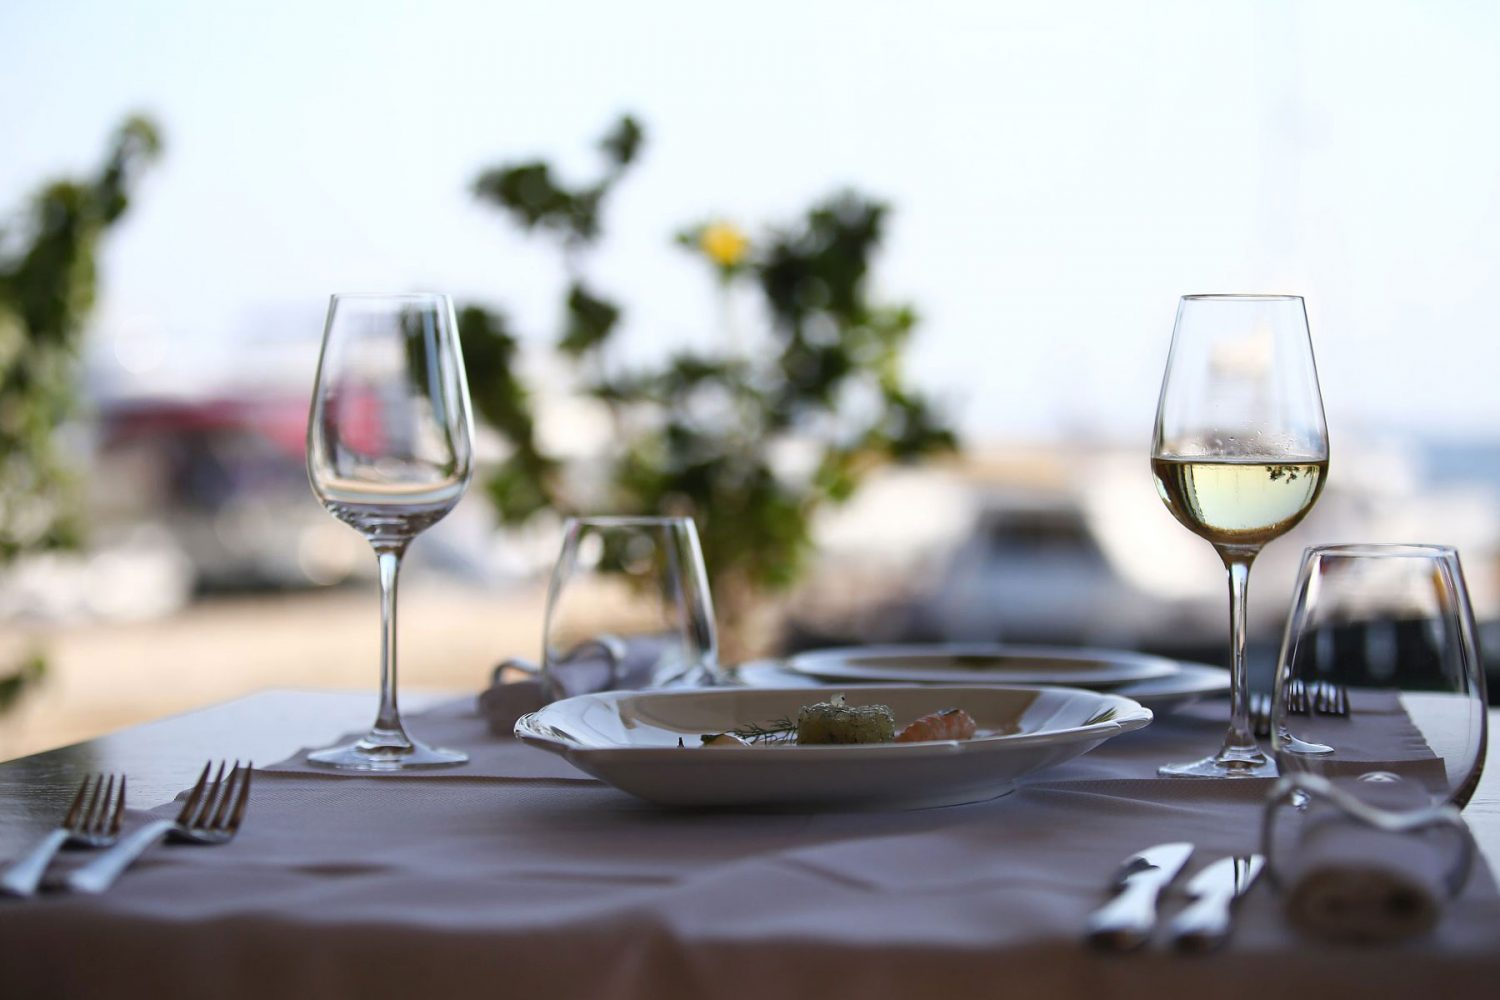 Archipelago Tours Kornati private tour - Kornati Experience Private Boat Tour photo of a table with glasses and food